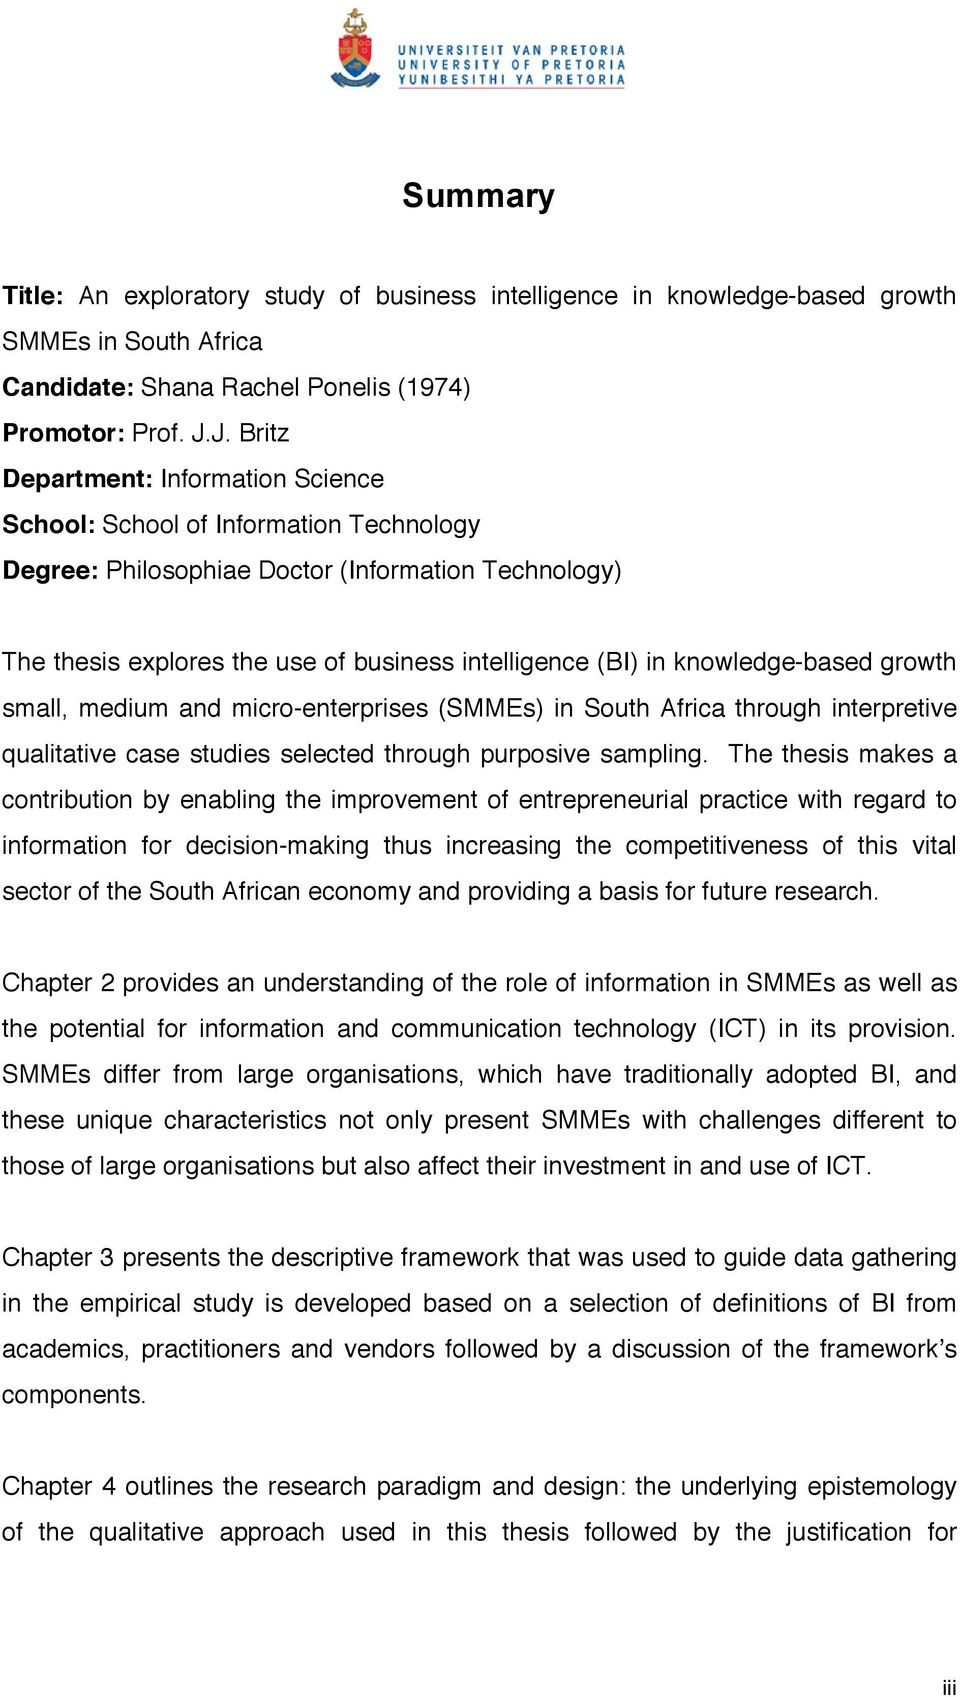 knowledge-based growth small, medium and micro-enterprises (SMMEs) in South Africa through interpretive qualitative case studies selected through purposive sampling.